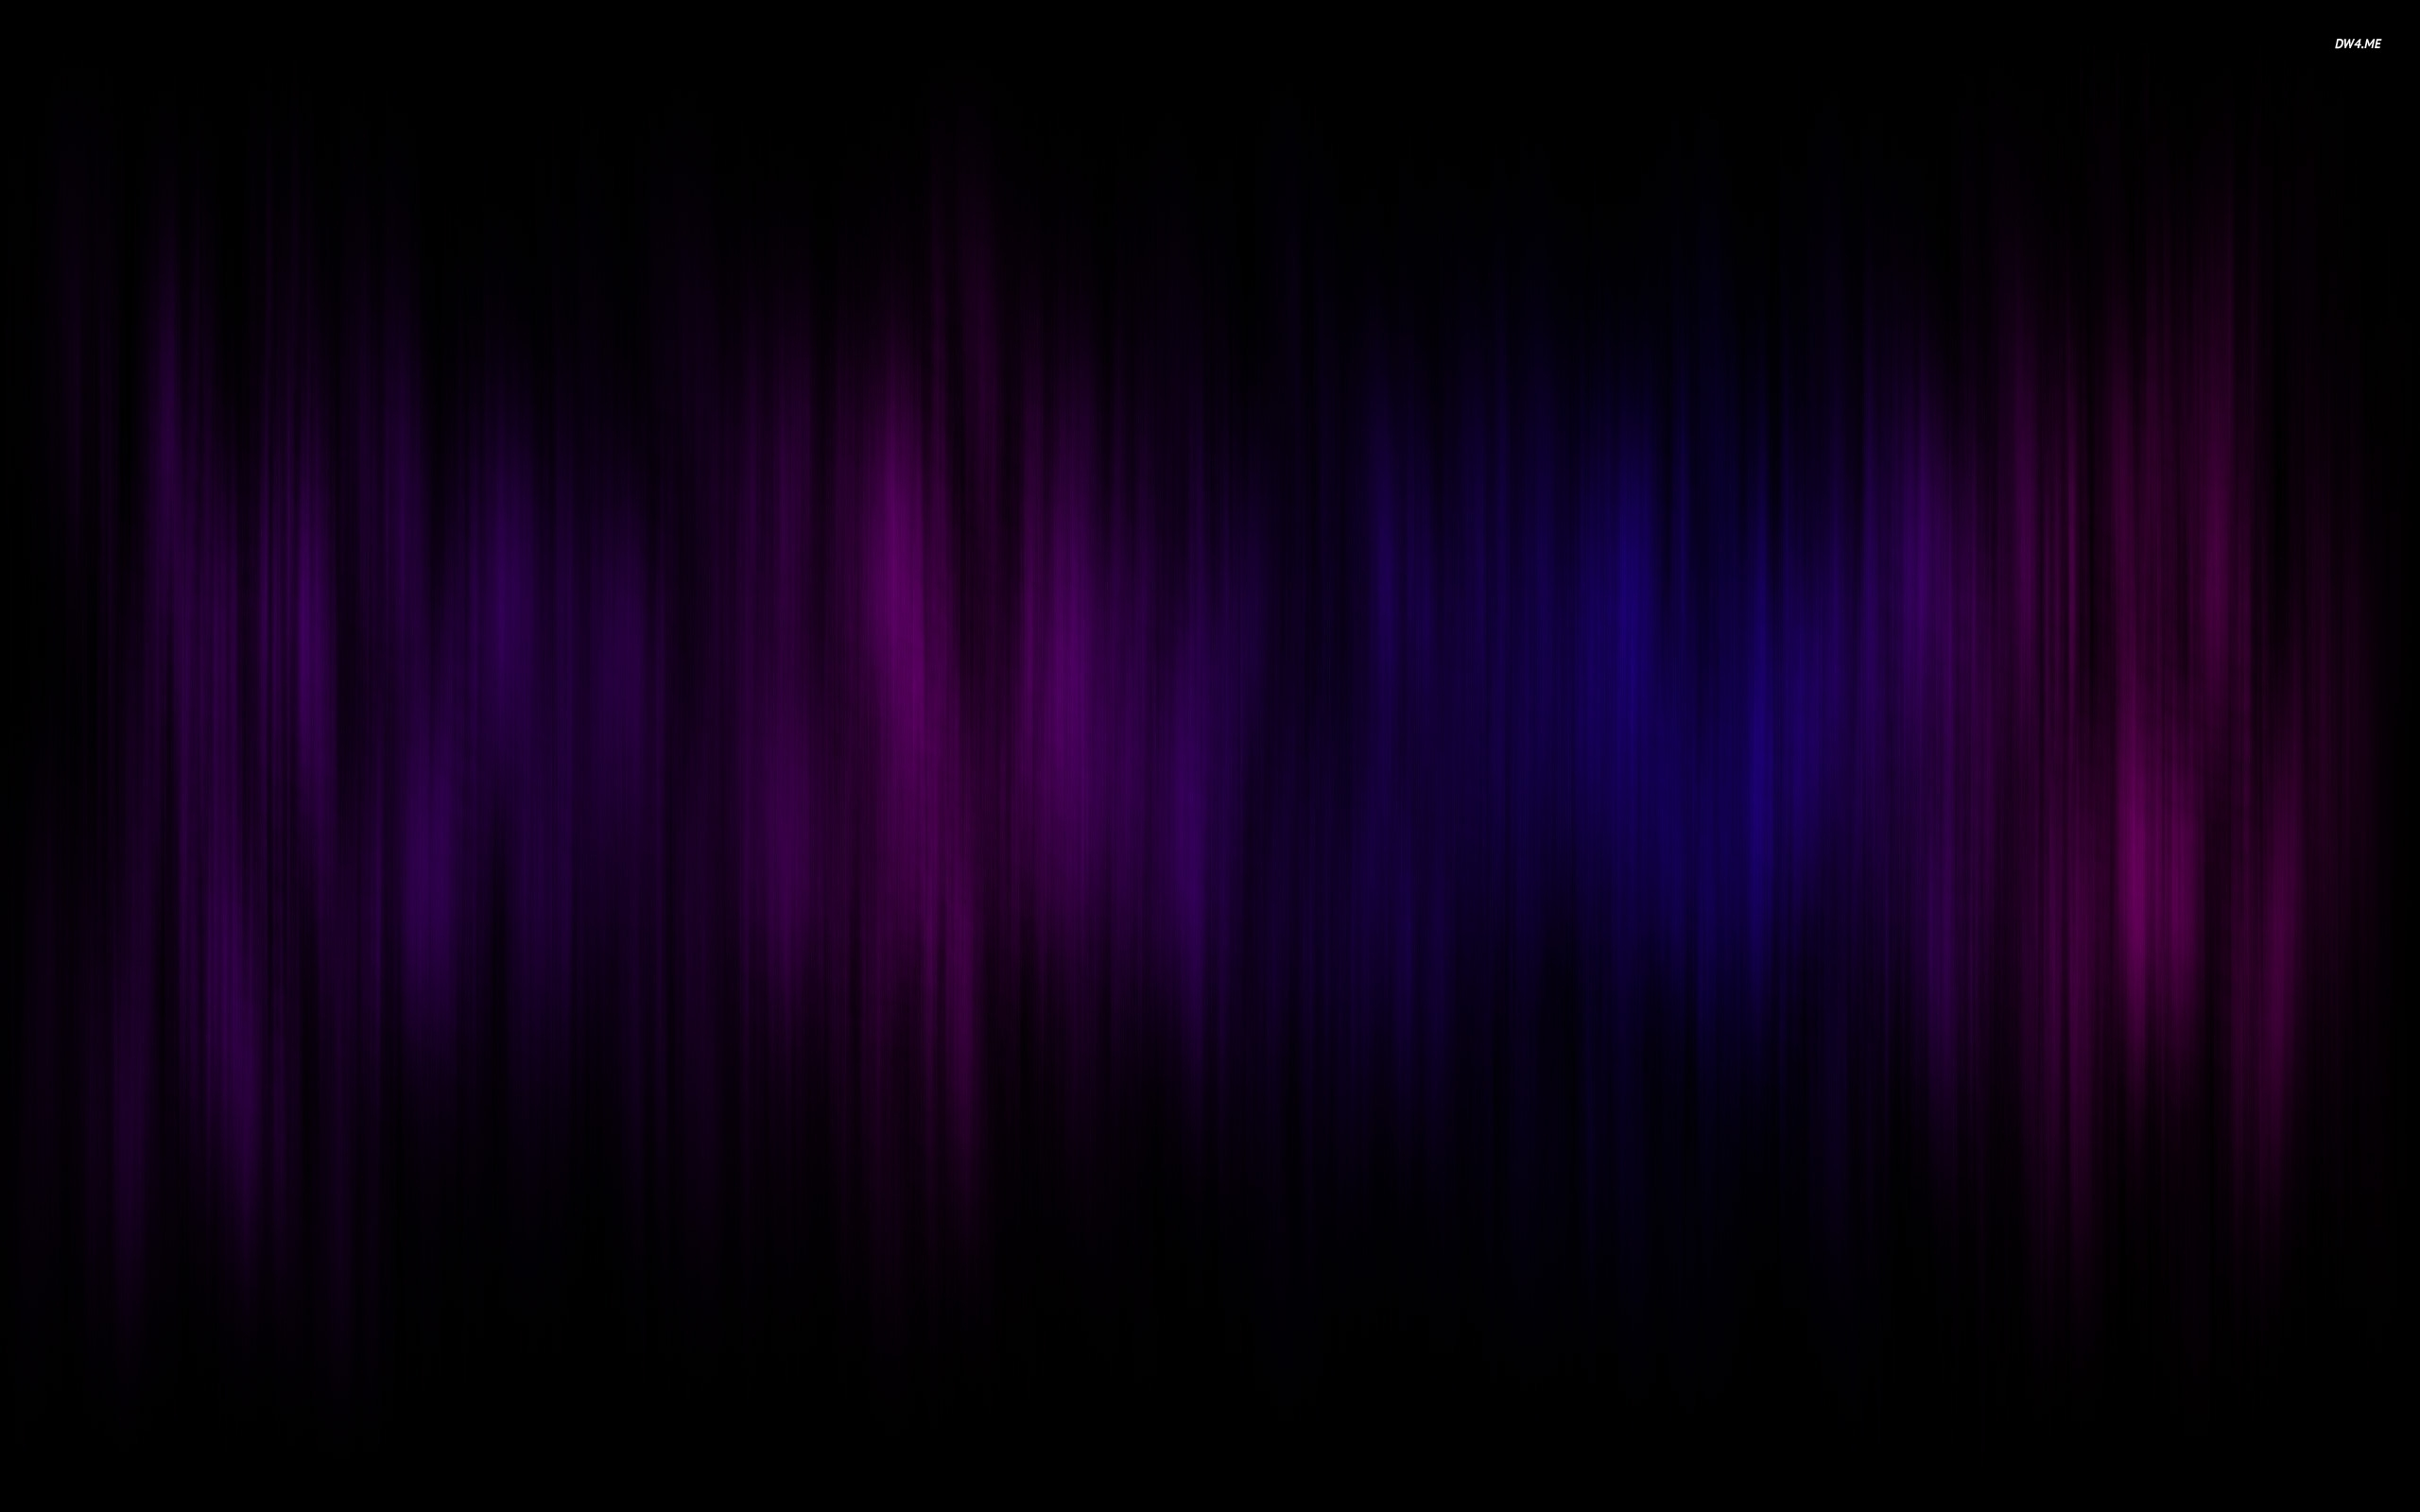 purple abstract black wallpaper 28416 - baltana